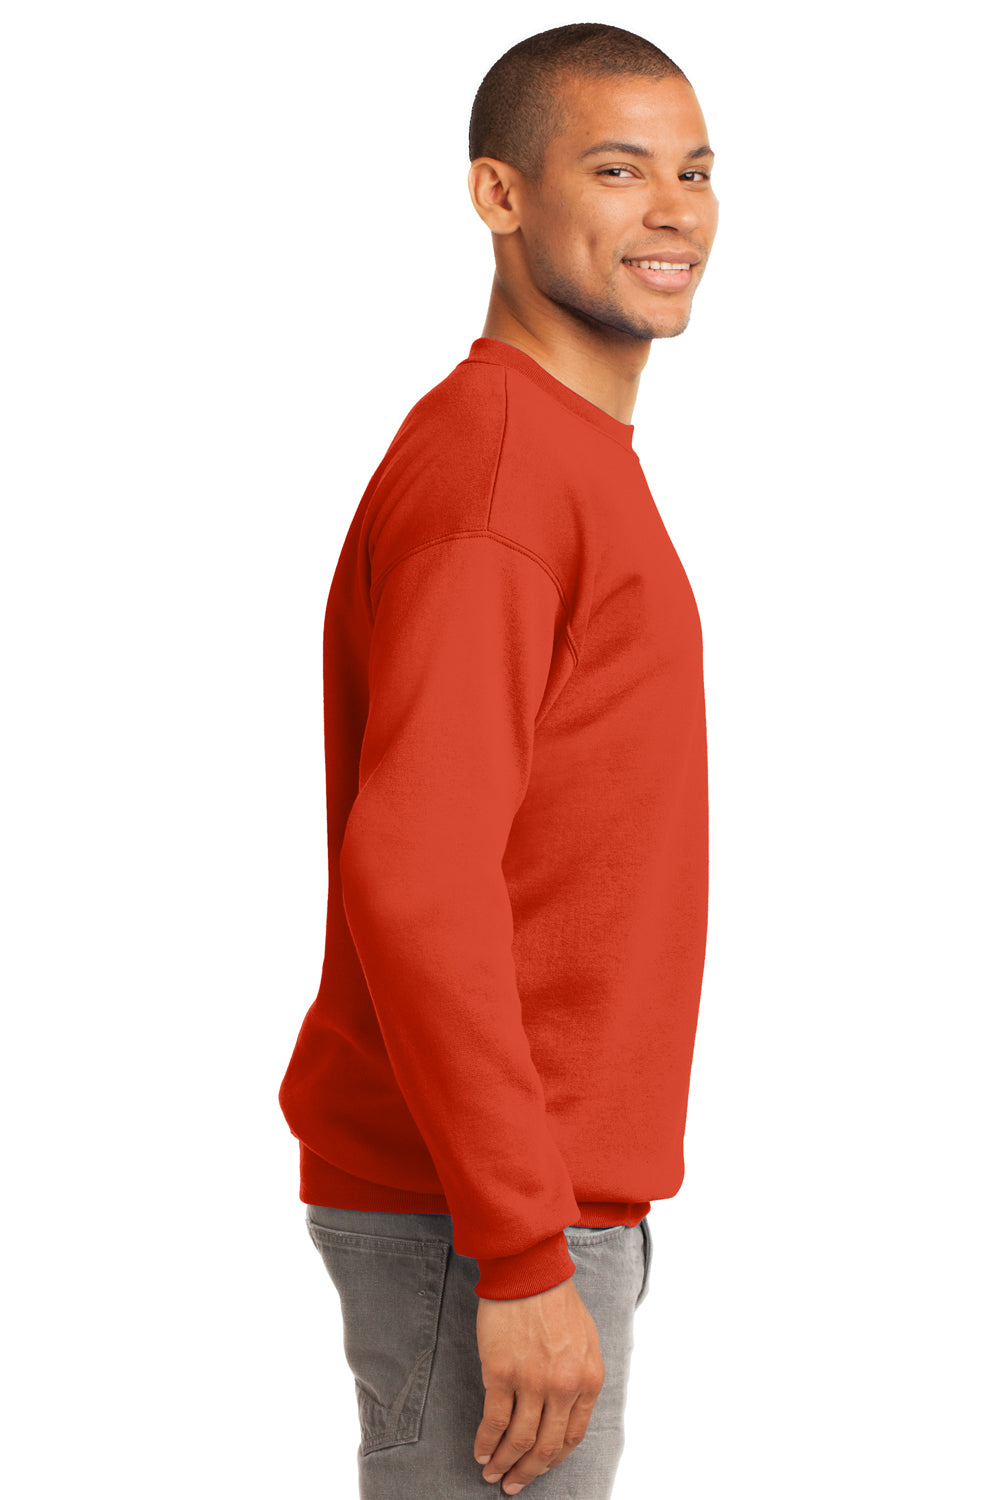 Port & Company PC90 Mens Essential Fleece Crewneck Sweatshirt Orange Side